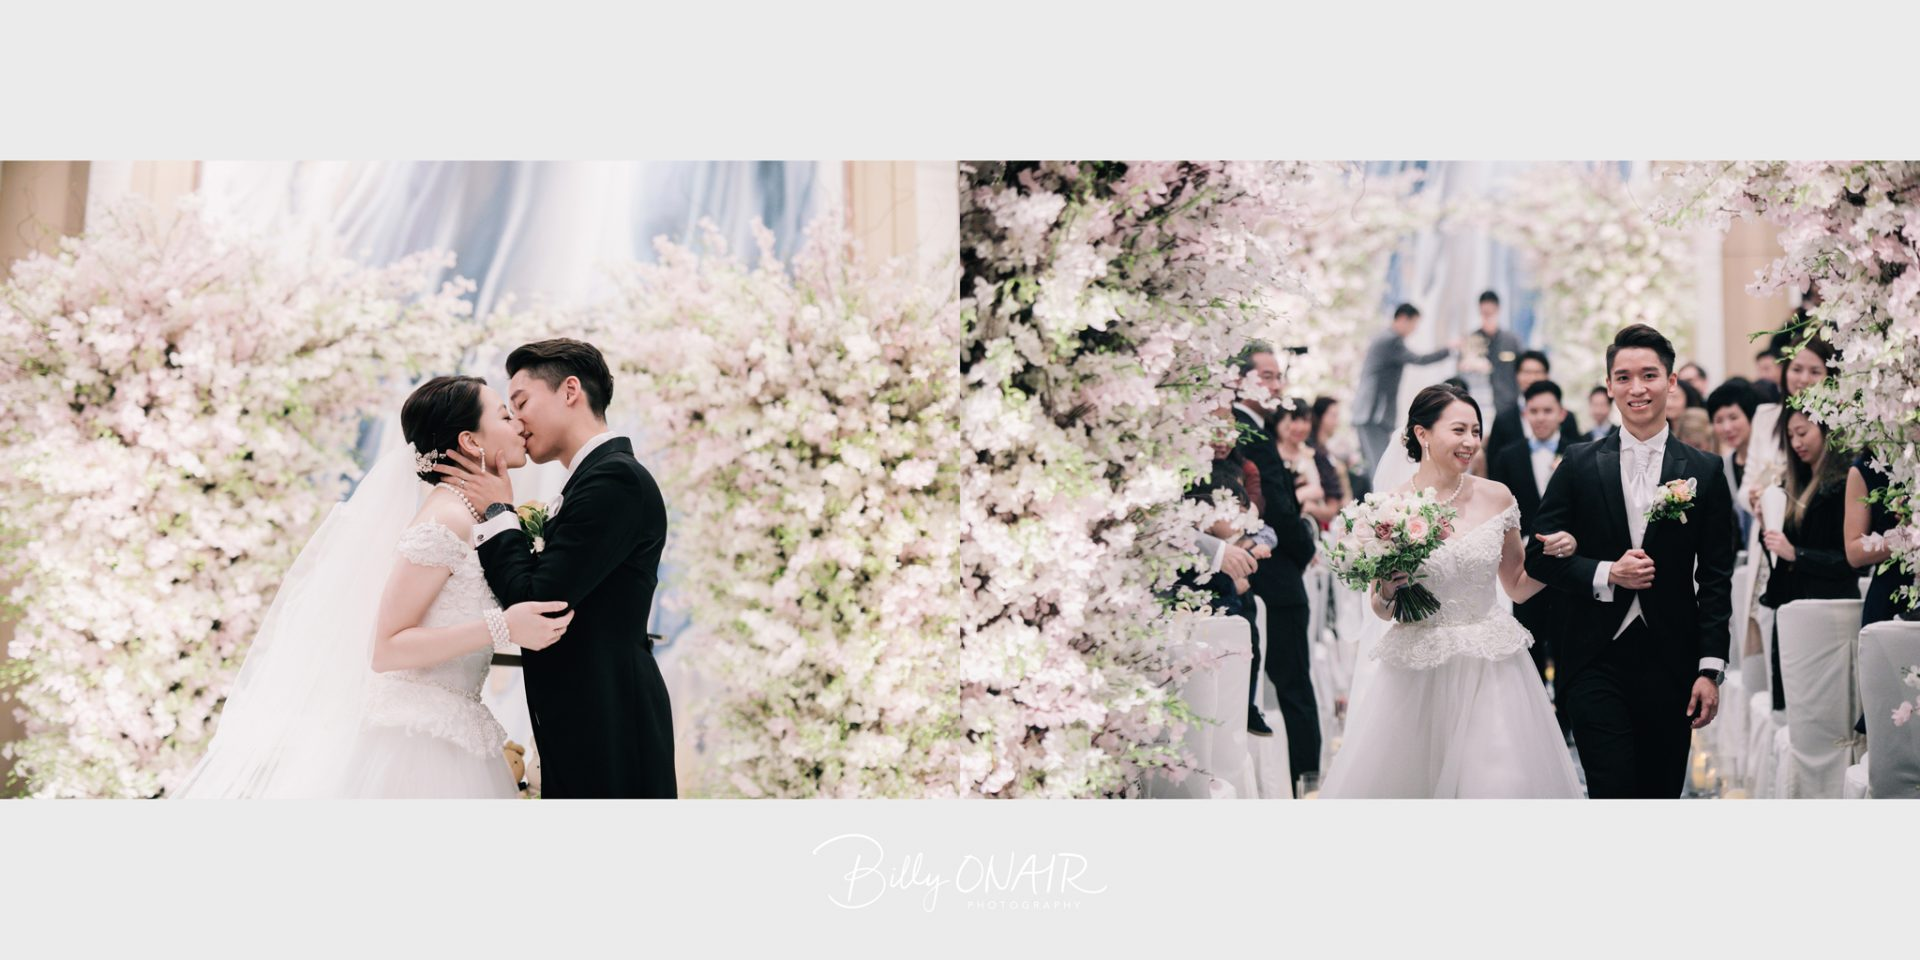 weddingphoto_24